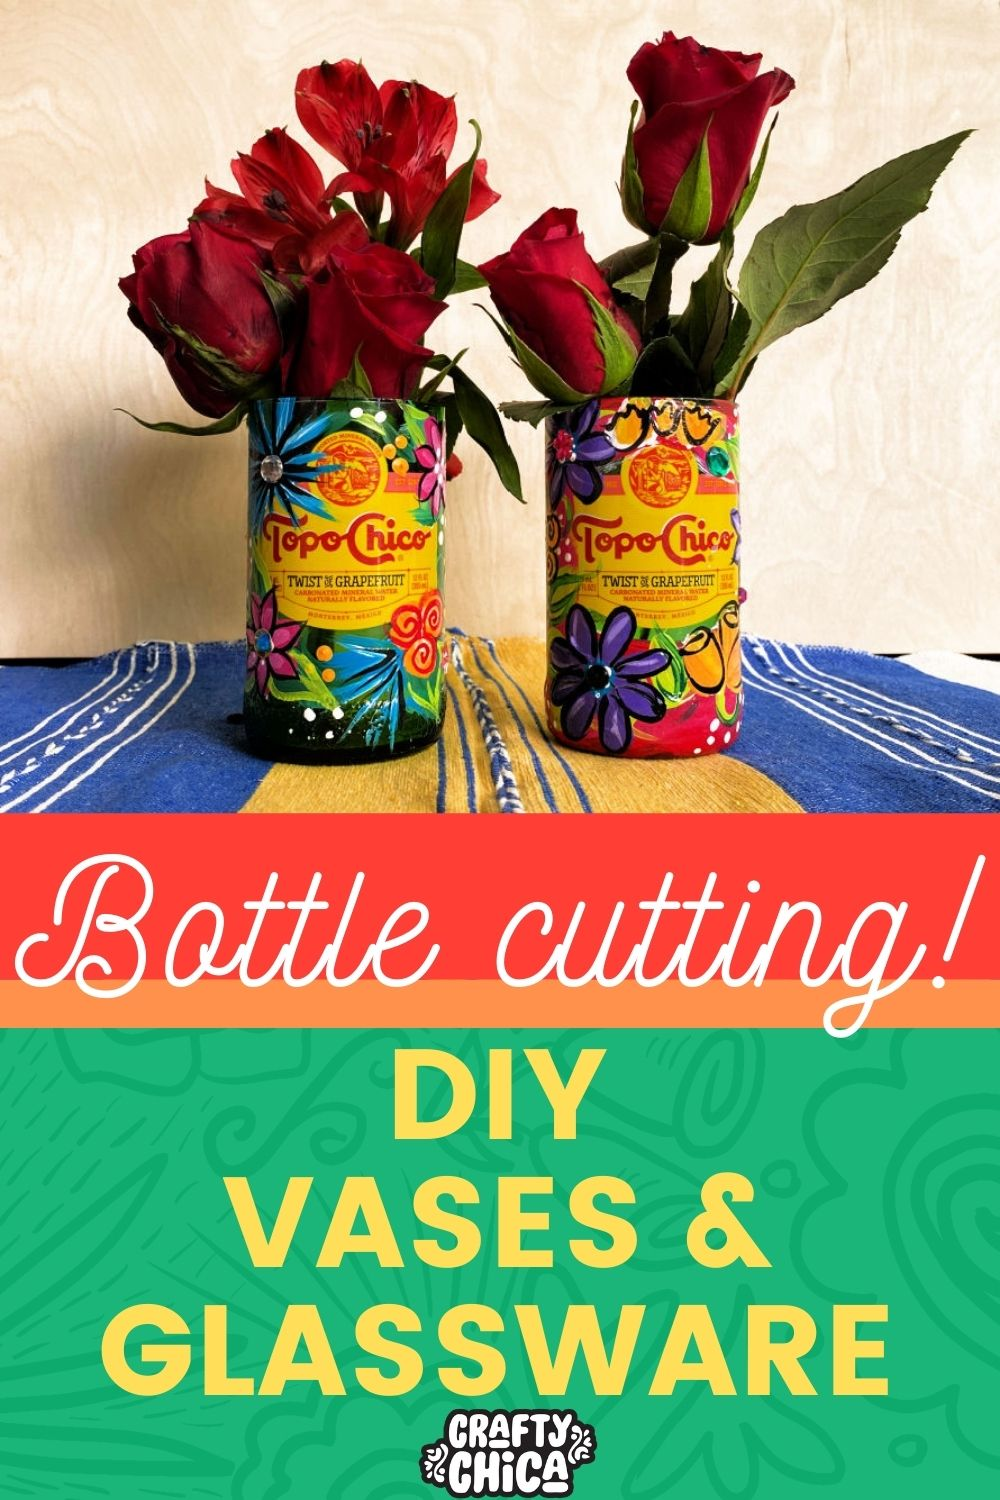 bottle cutting: How to cut bottles into vases or glasses